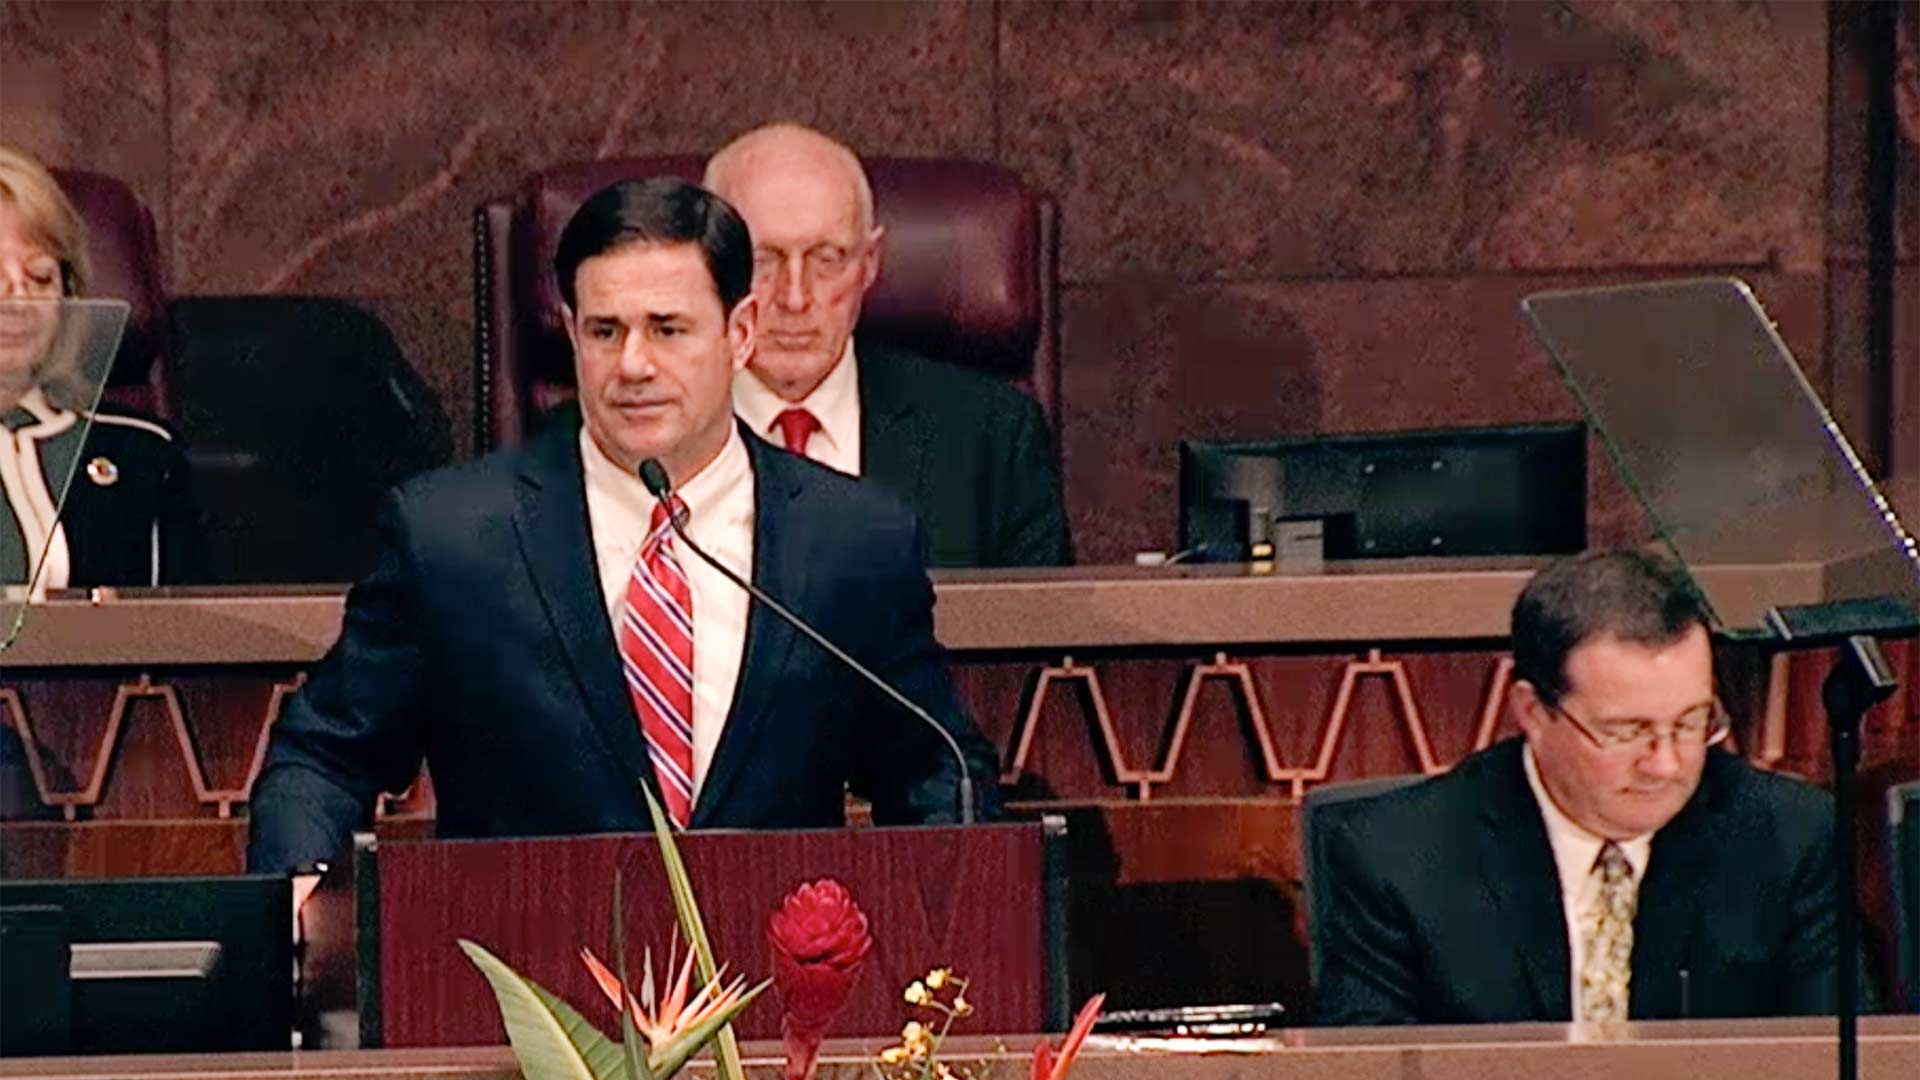 Gov. Doug Ducey delivered his 2019 State of the State address in this still image from a livestream.